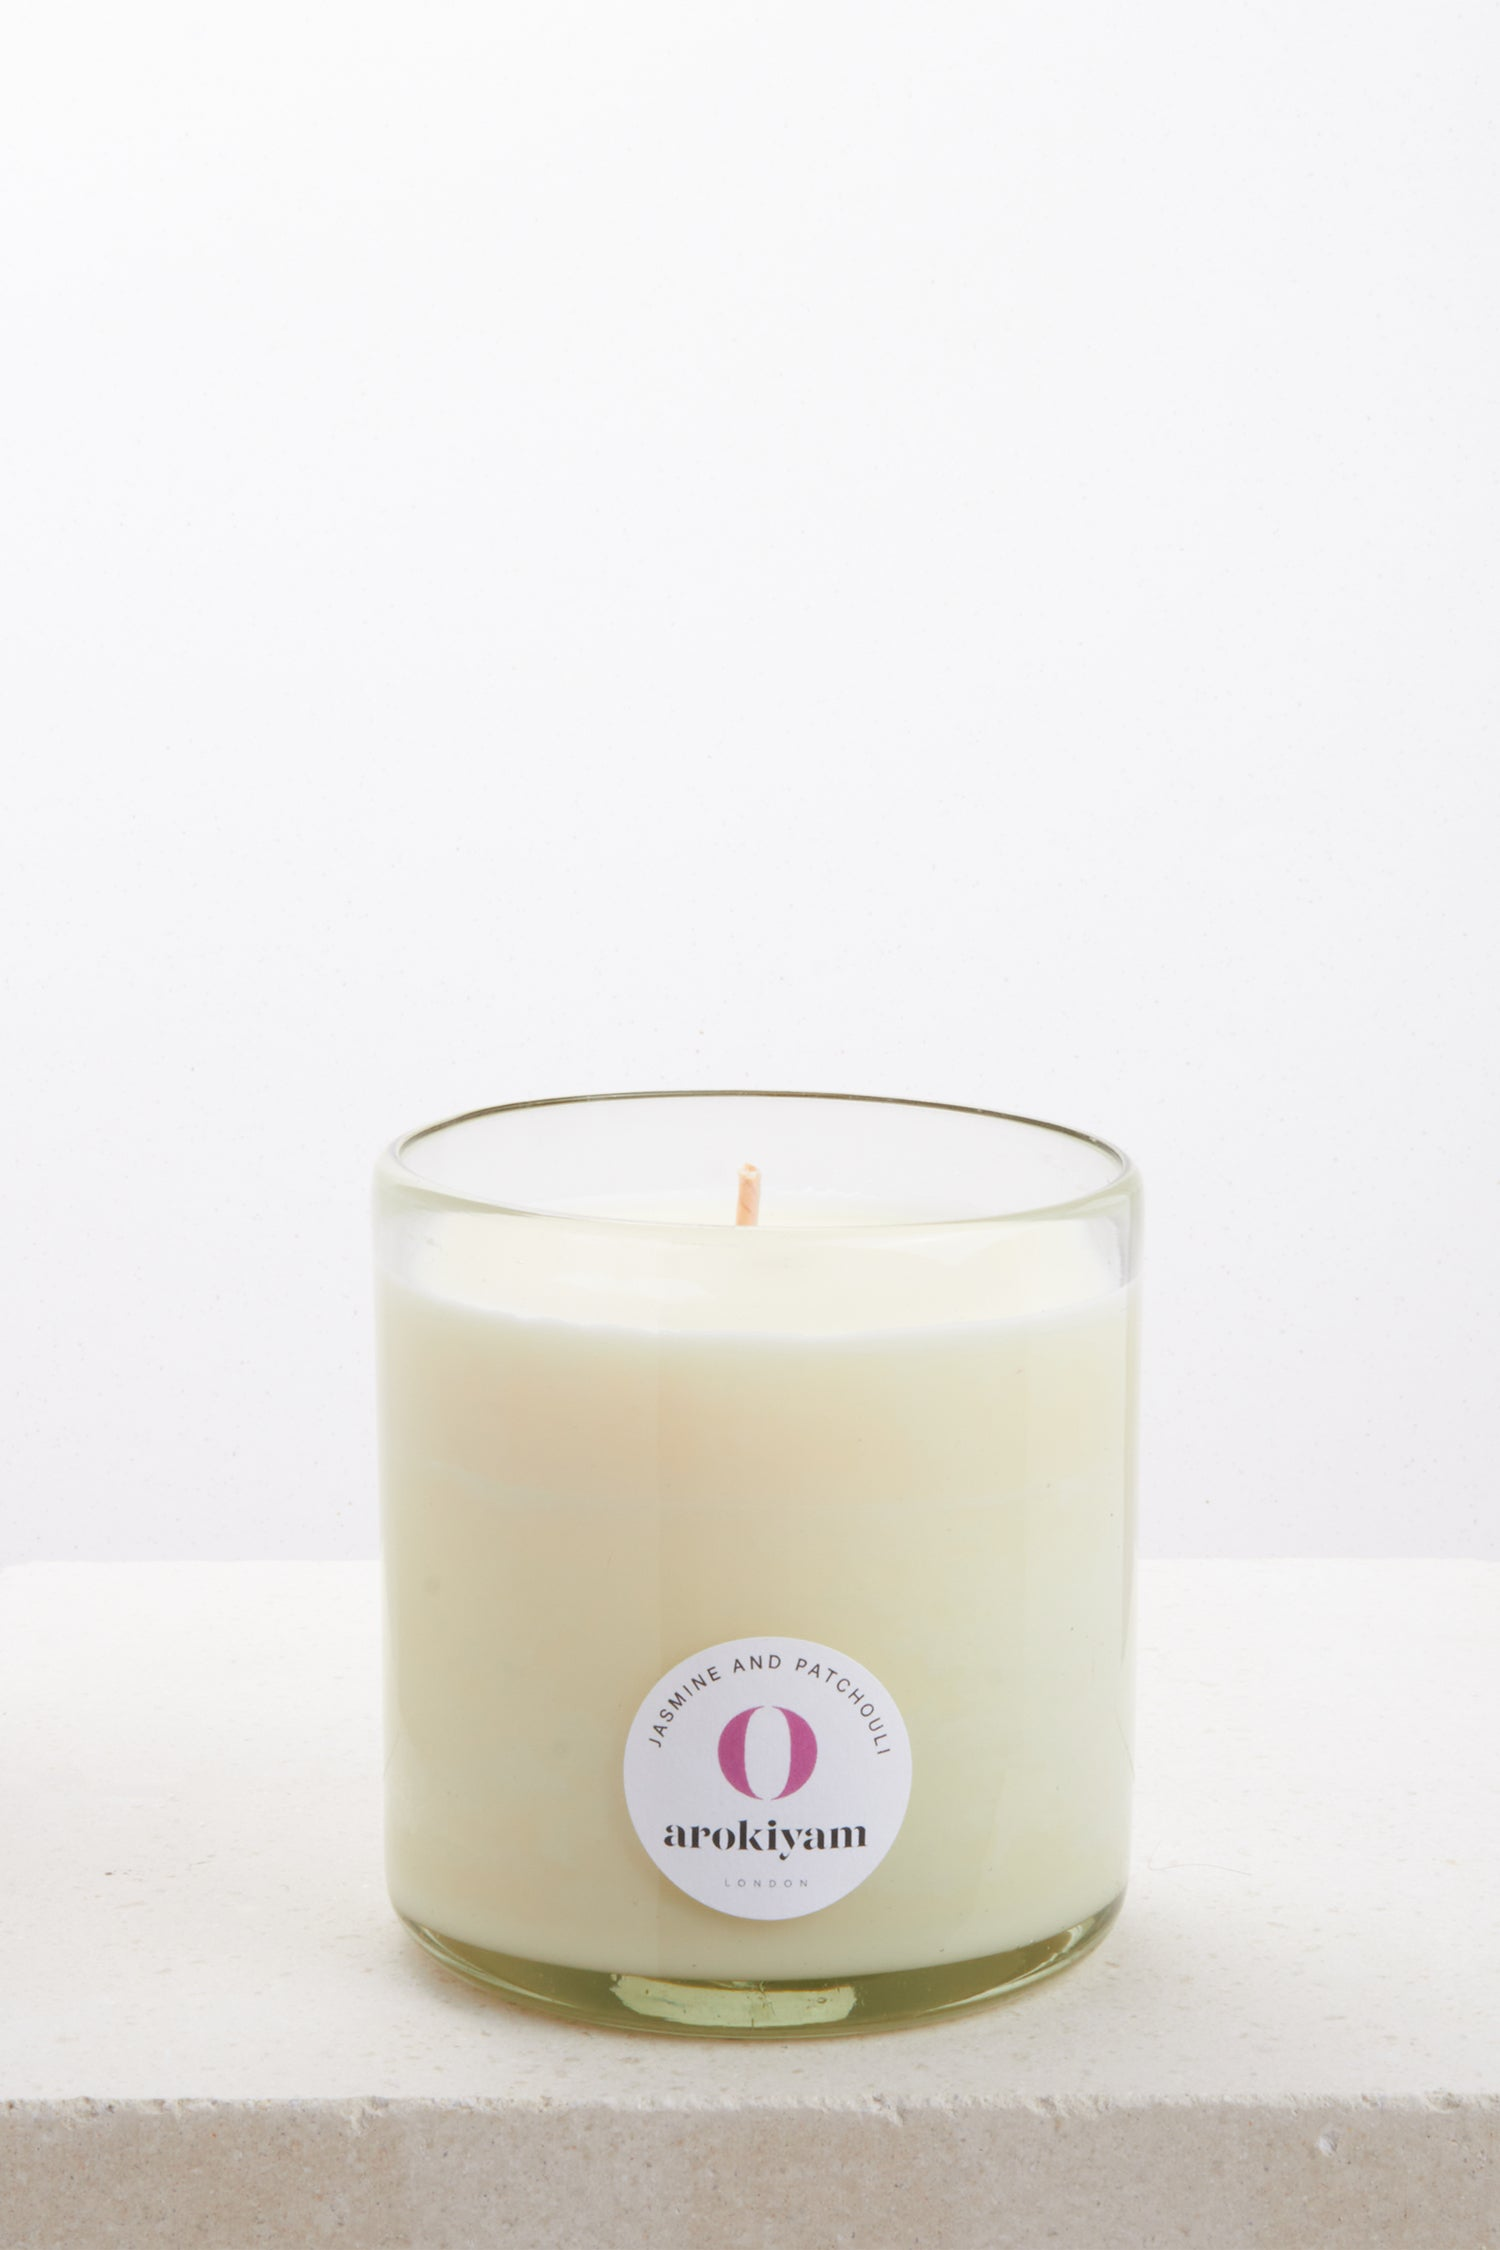 Vegan candle made from a coconut and soy wax and scented with natural jasmine and patchouli. Made in London.